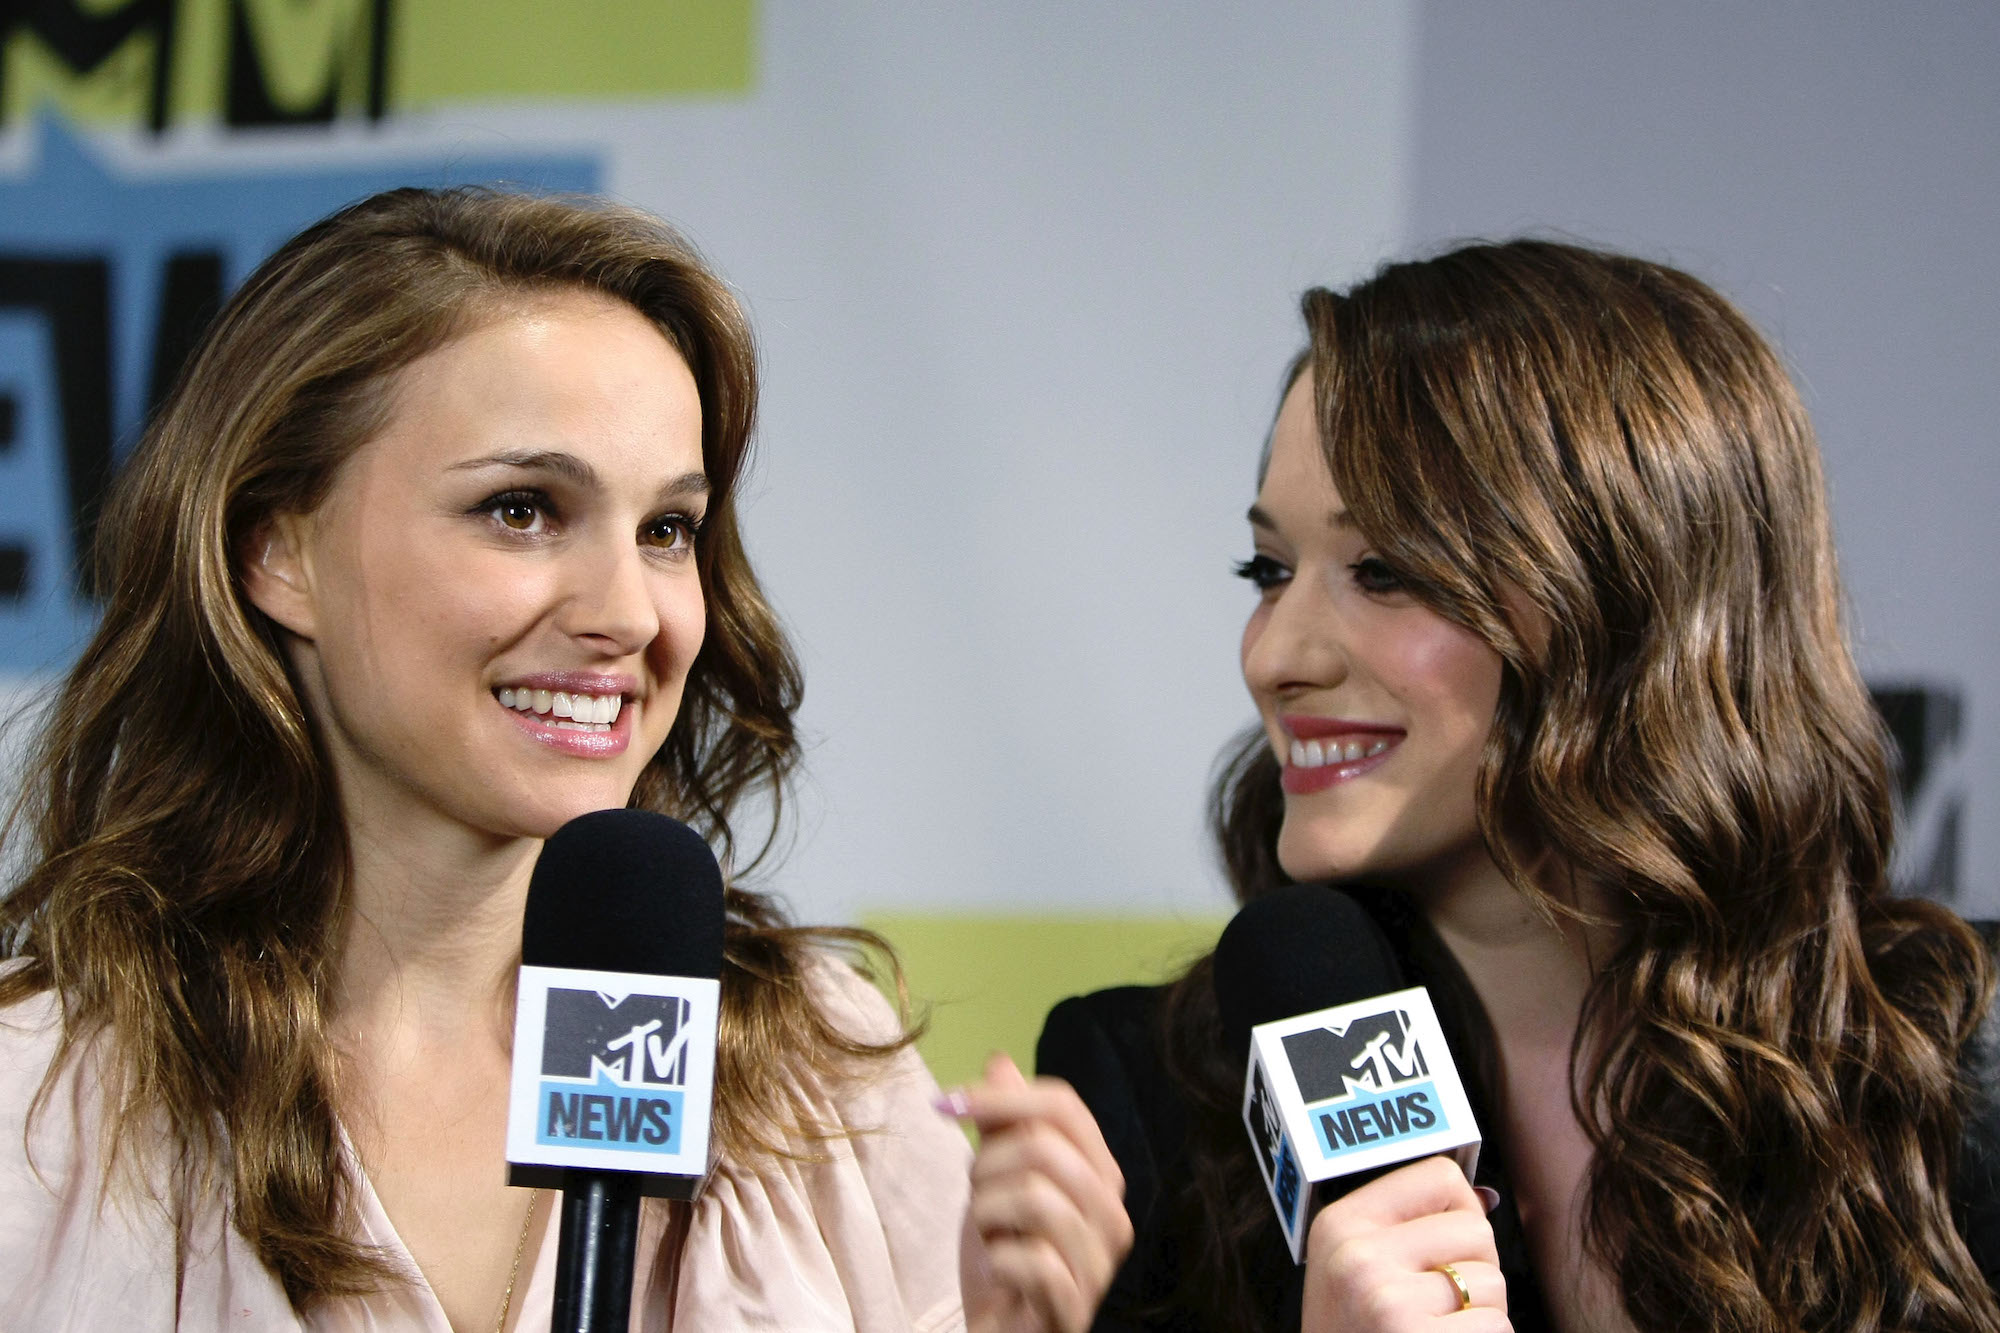 Natalie Portman and Kat Dennings at San Diego Comic-Con 2010 on July 24, 2010